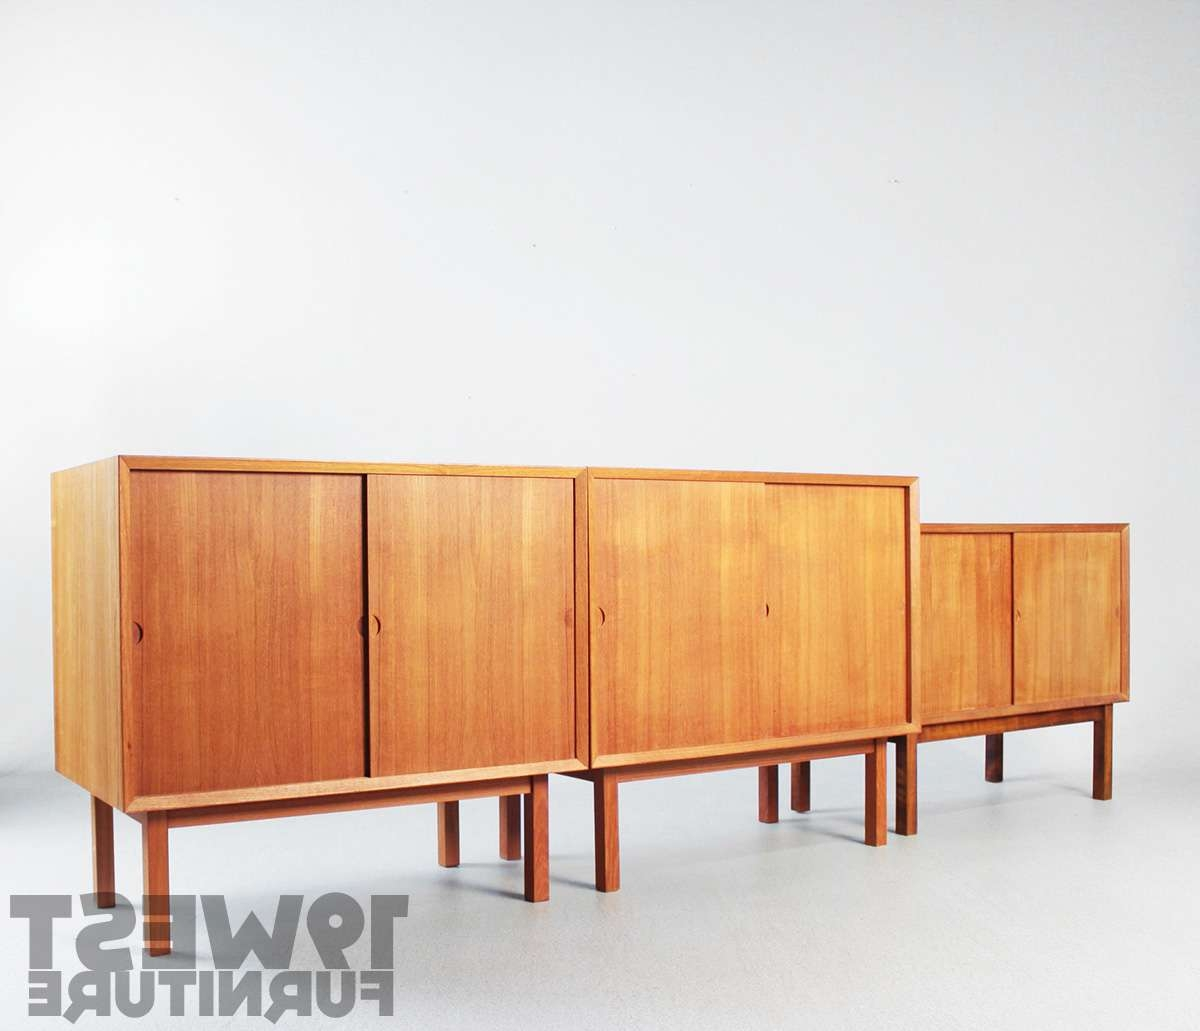 Kleine Sideboards, Poul Cadovius | 19 West Pertaining To Kleine Sideboards (View 5 of 20)